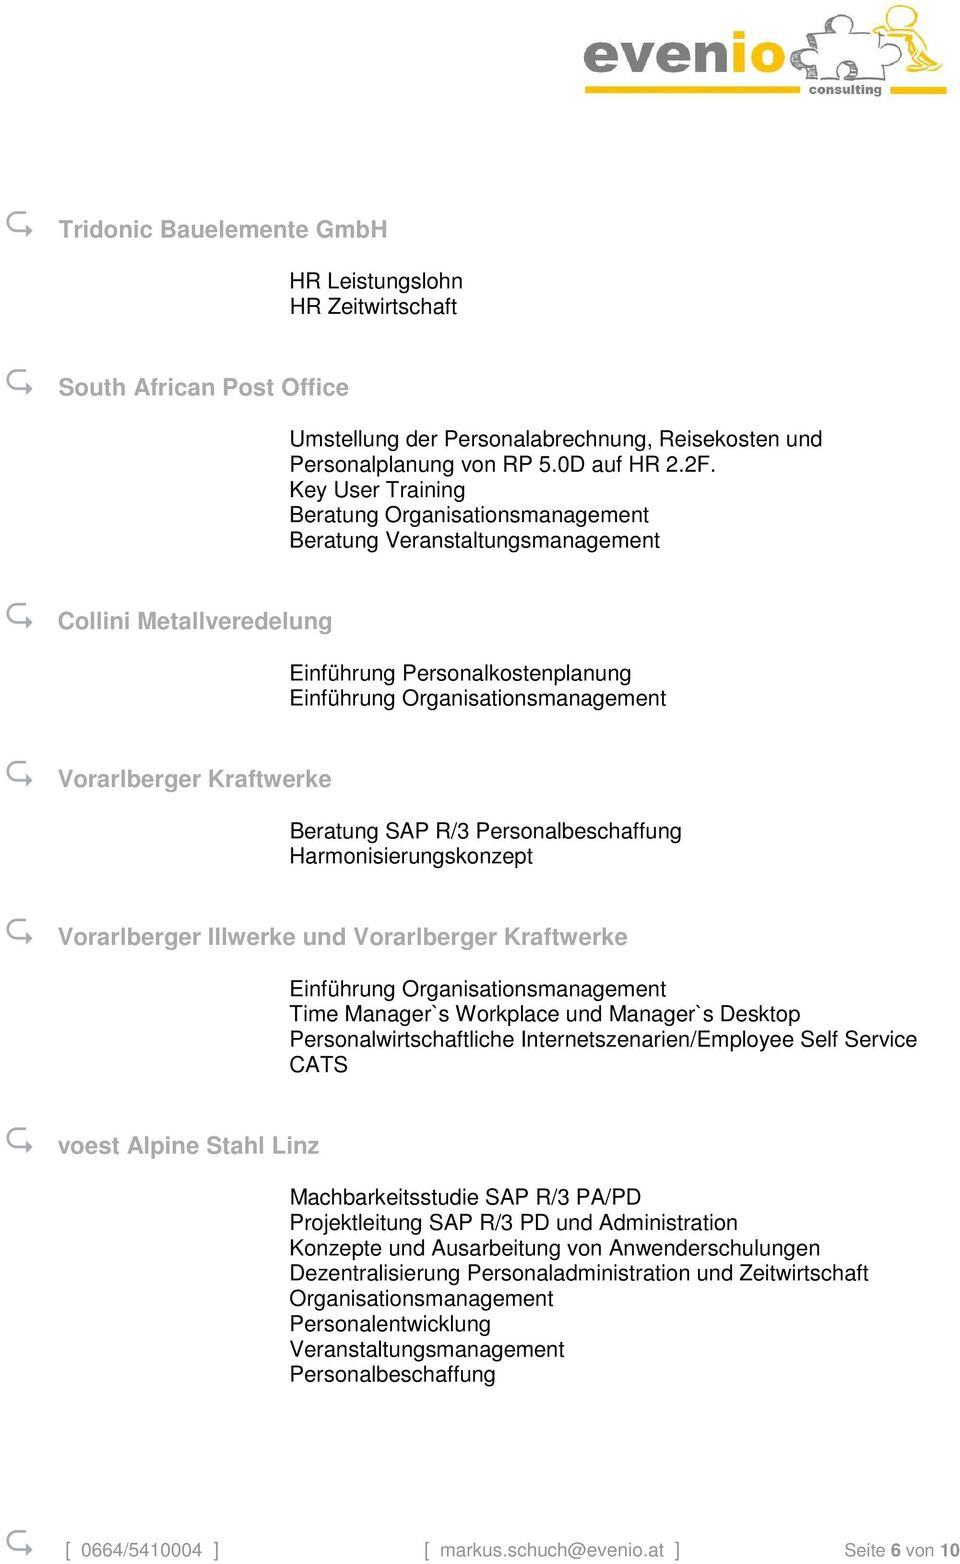 Harmonisierungskonzept Vorarlberger Illwerke und Vorarlberger Kraftwerke Einführung Time Manager`s Workplace und Manager`s Desktop Personalwirtschaftliche Internetszenarien/Employee Self Service CATS